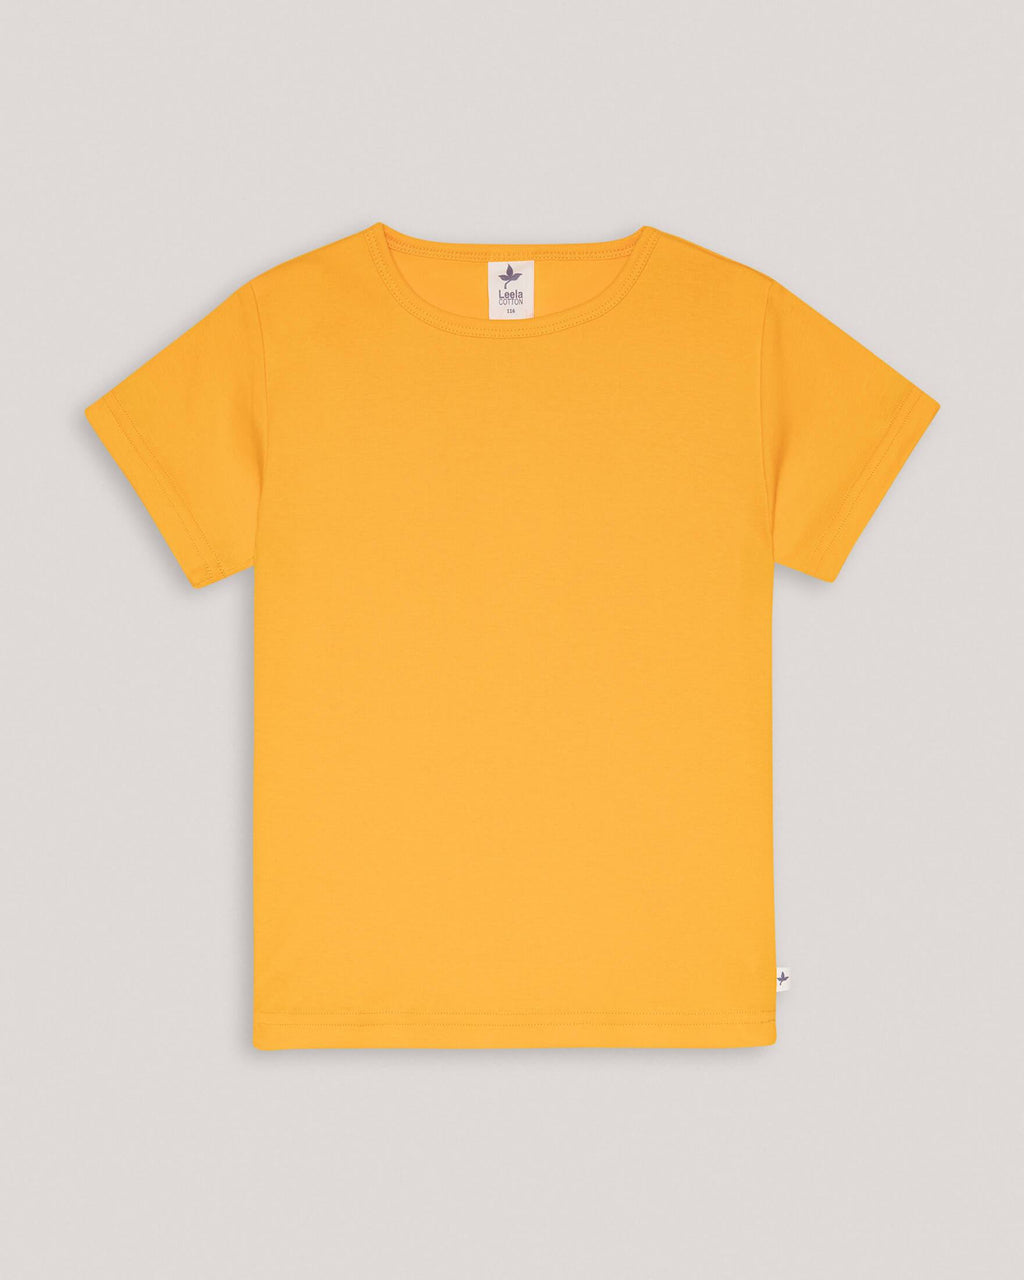 variant_1 | EN Organic Yellow basic Tshirt for kids | DE Bio gelbes tshirt für kids basics